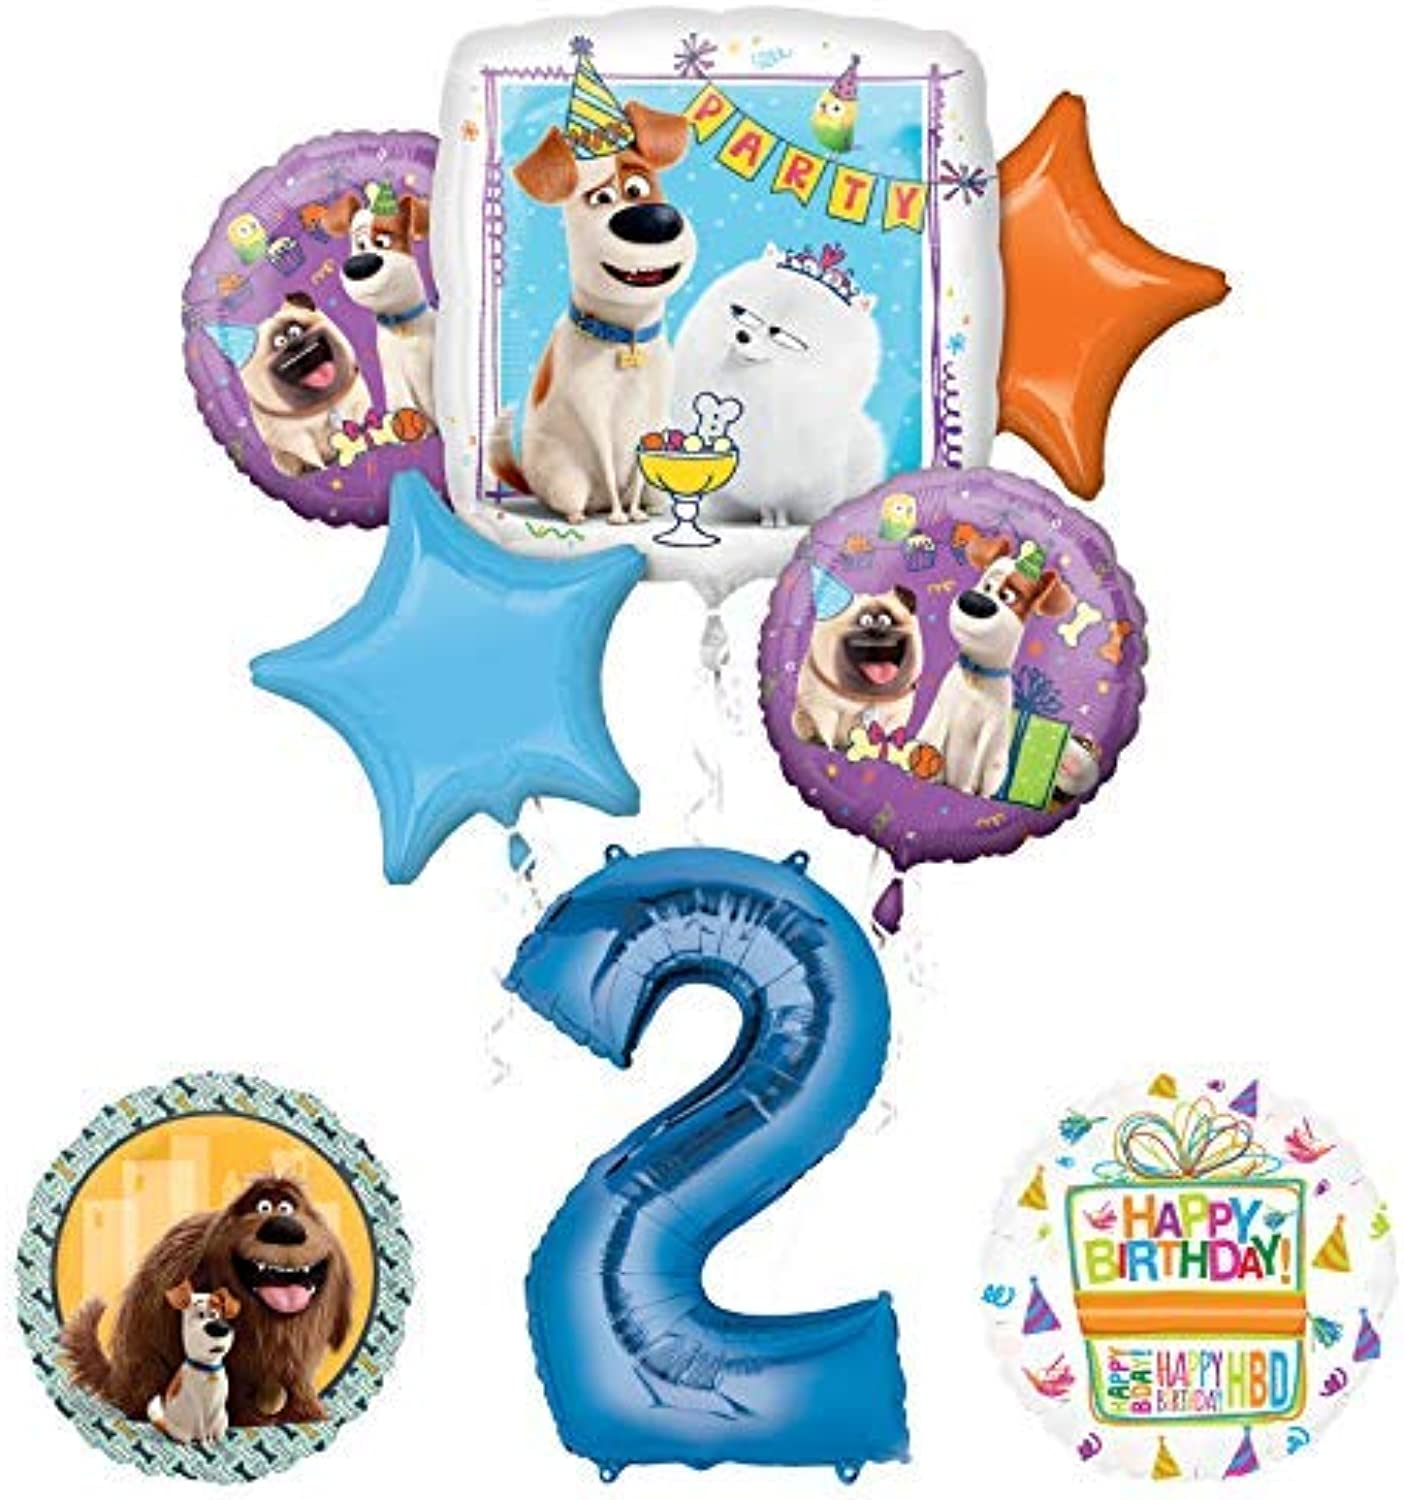 Mayflower Products Secret Life of Pets Party Supplies 2nd Birthday Balloon Bouquet Decorations  bluee Number 2